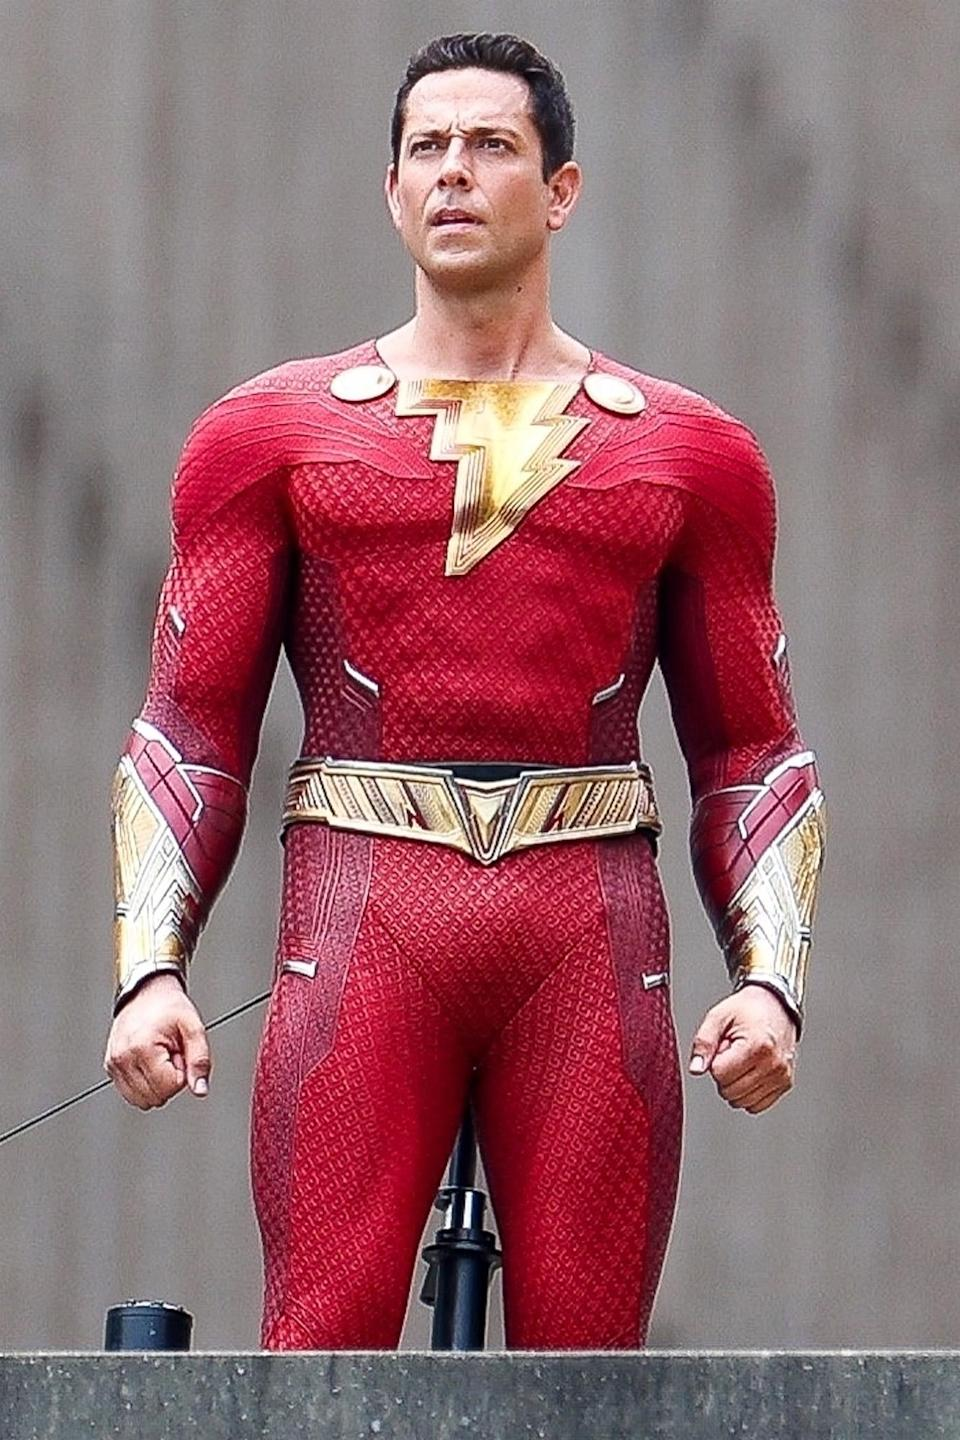 <p>Zachary Levi is seen in costume filming<i> Shazam! Fury of the Gods</i> on June 3 in Union City, Georgia. </p>